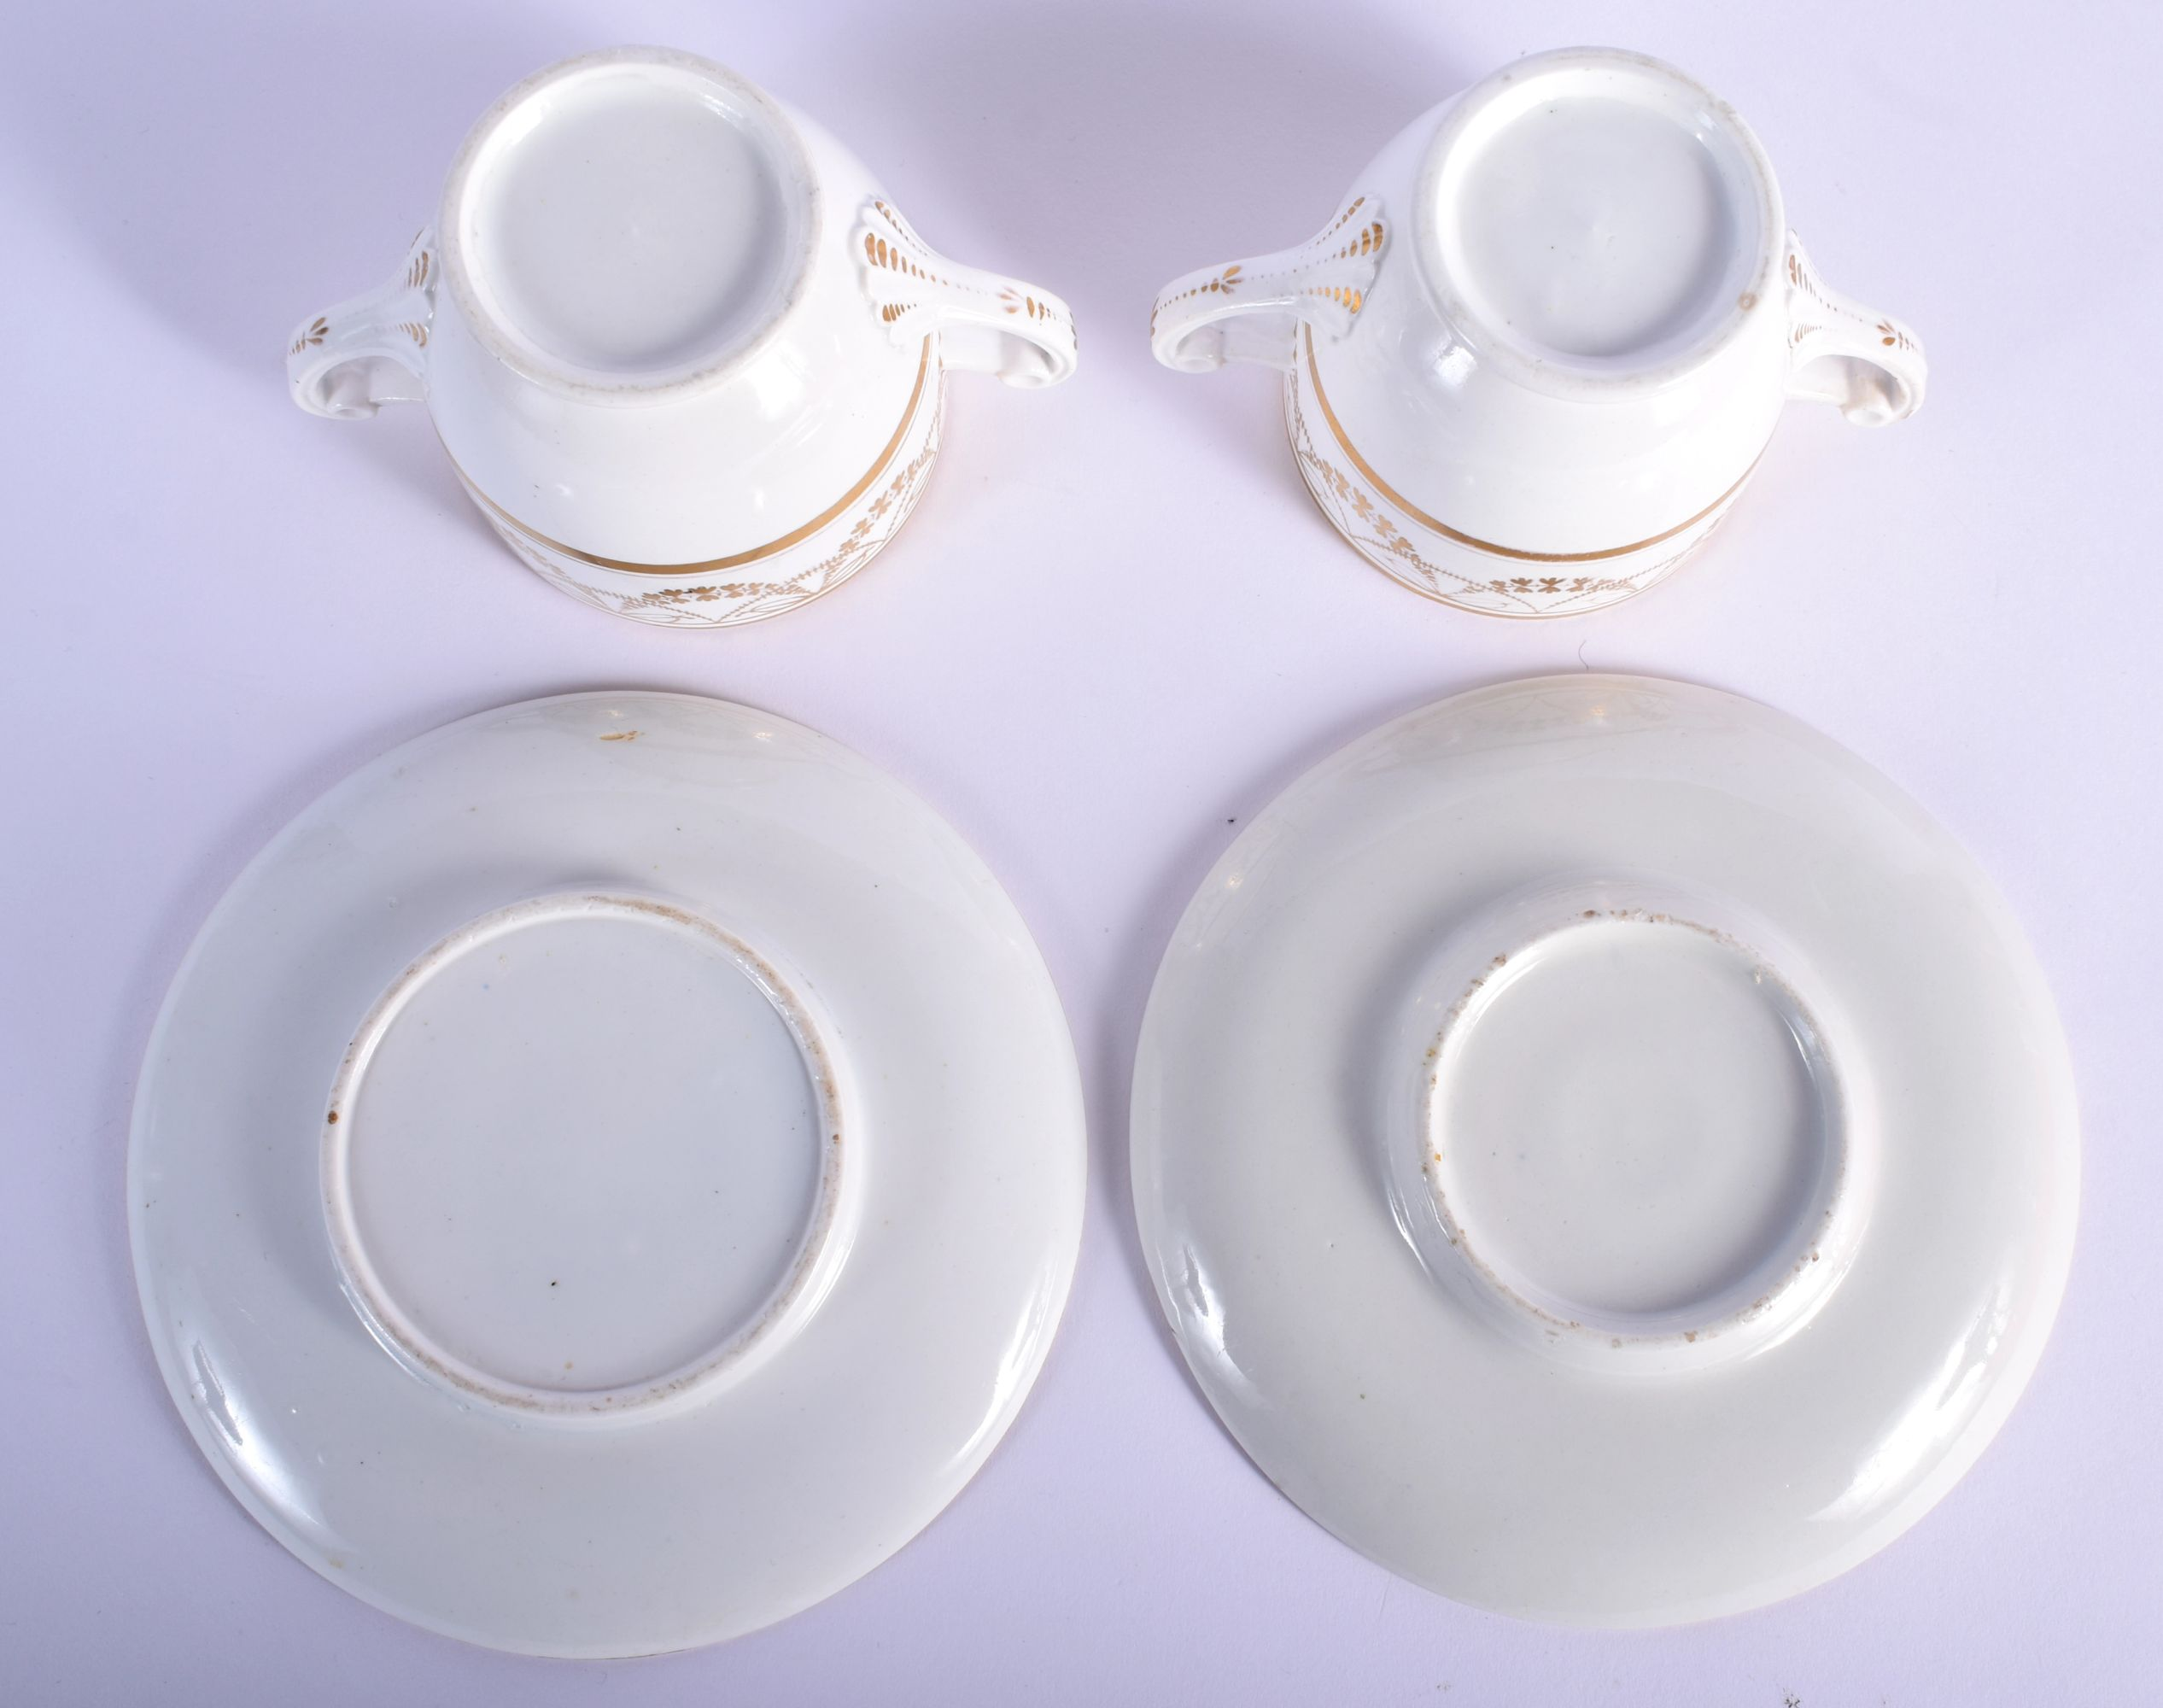 A PAIR OF EARLY 19TH CENTURY TWIN HANDLED GILDED CUPS AND SAUCERS Coalport or Derby, painted with ne - Image 3 of 3